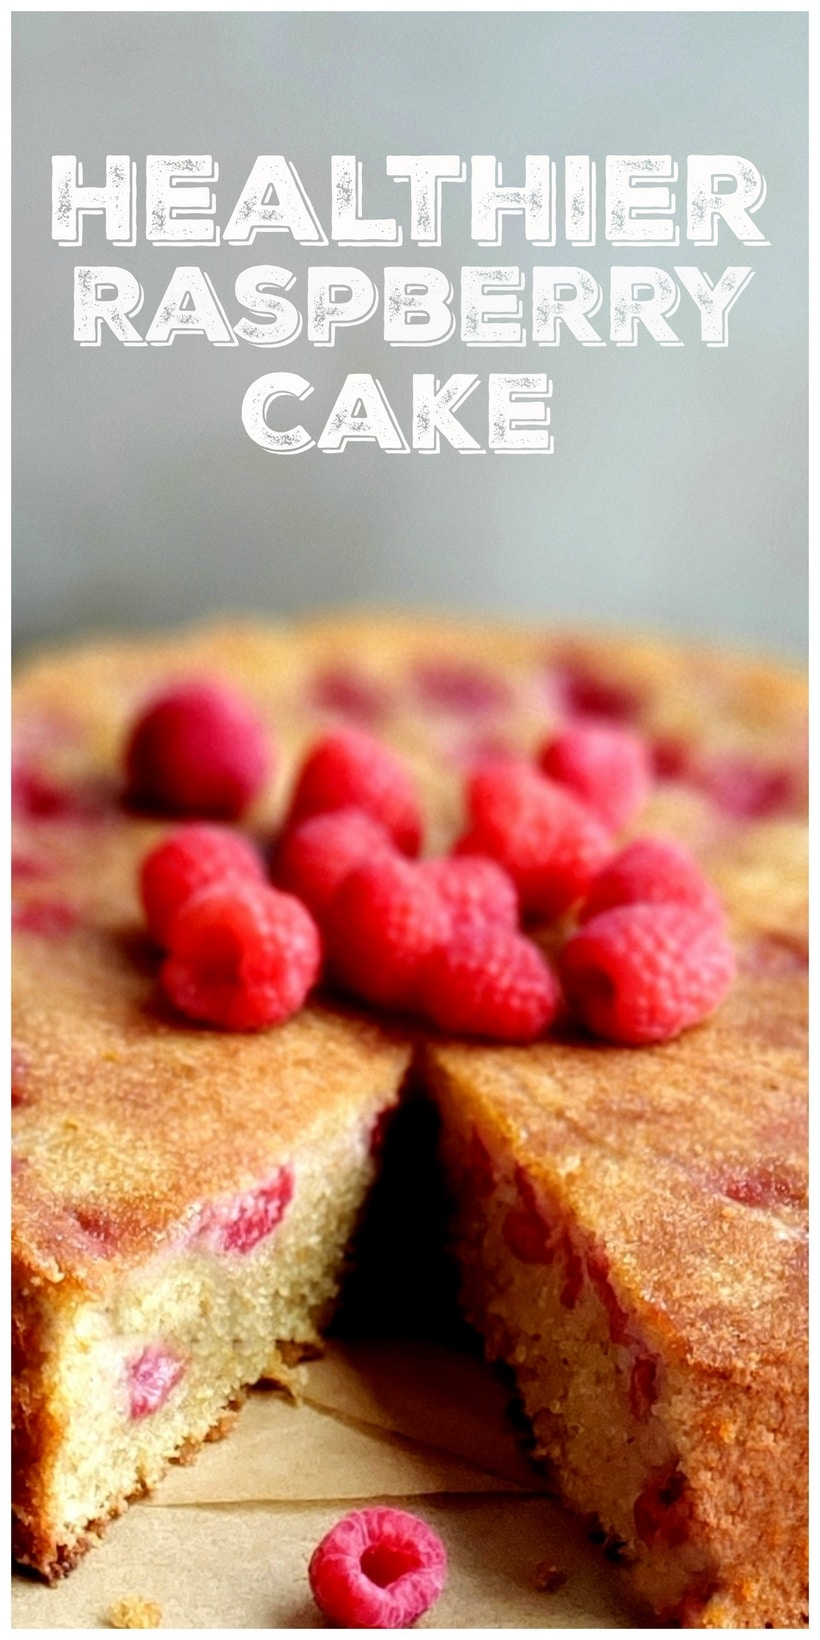 Healthier raspberry cake in text with raspberry cake with a slice missing.